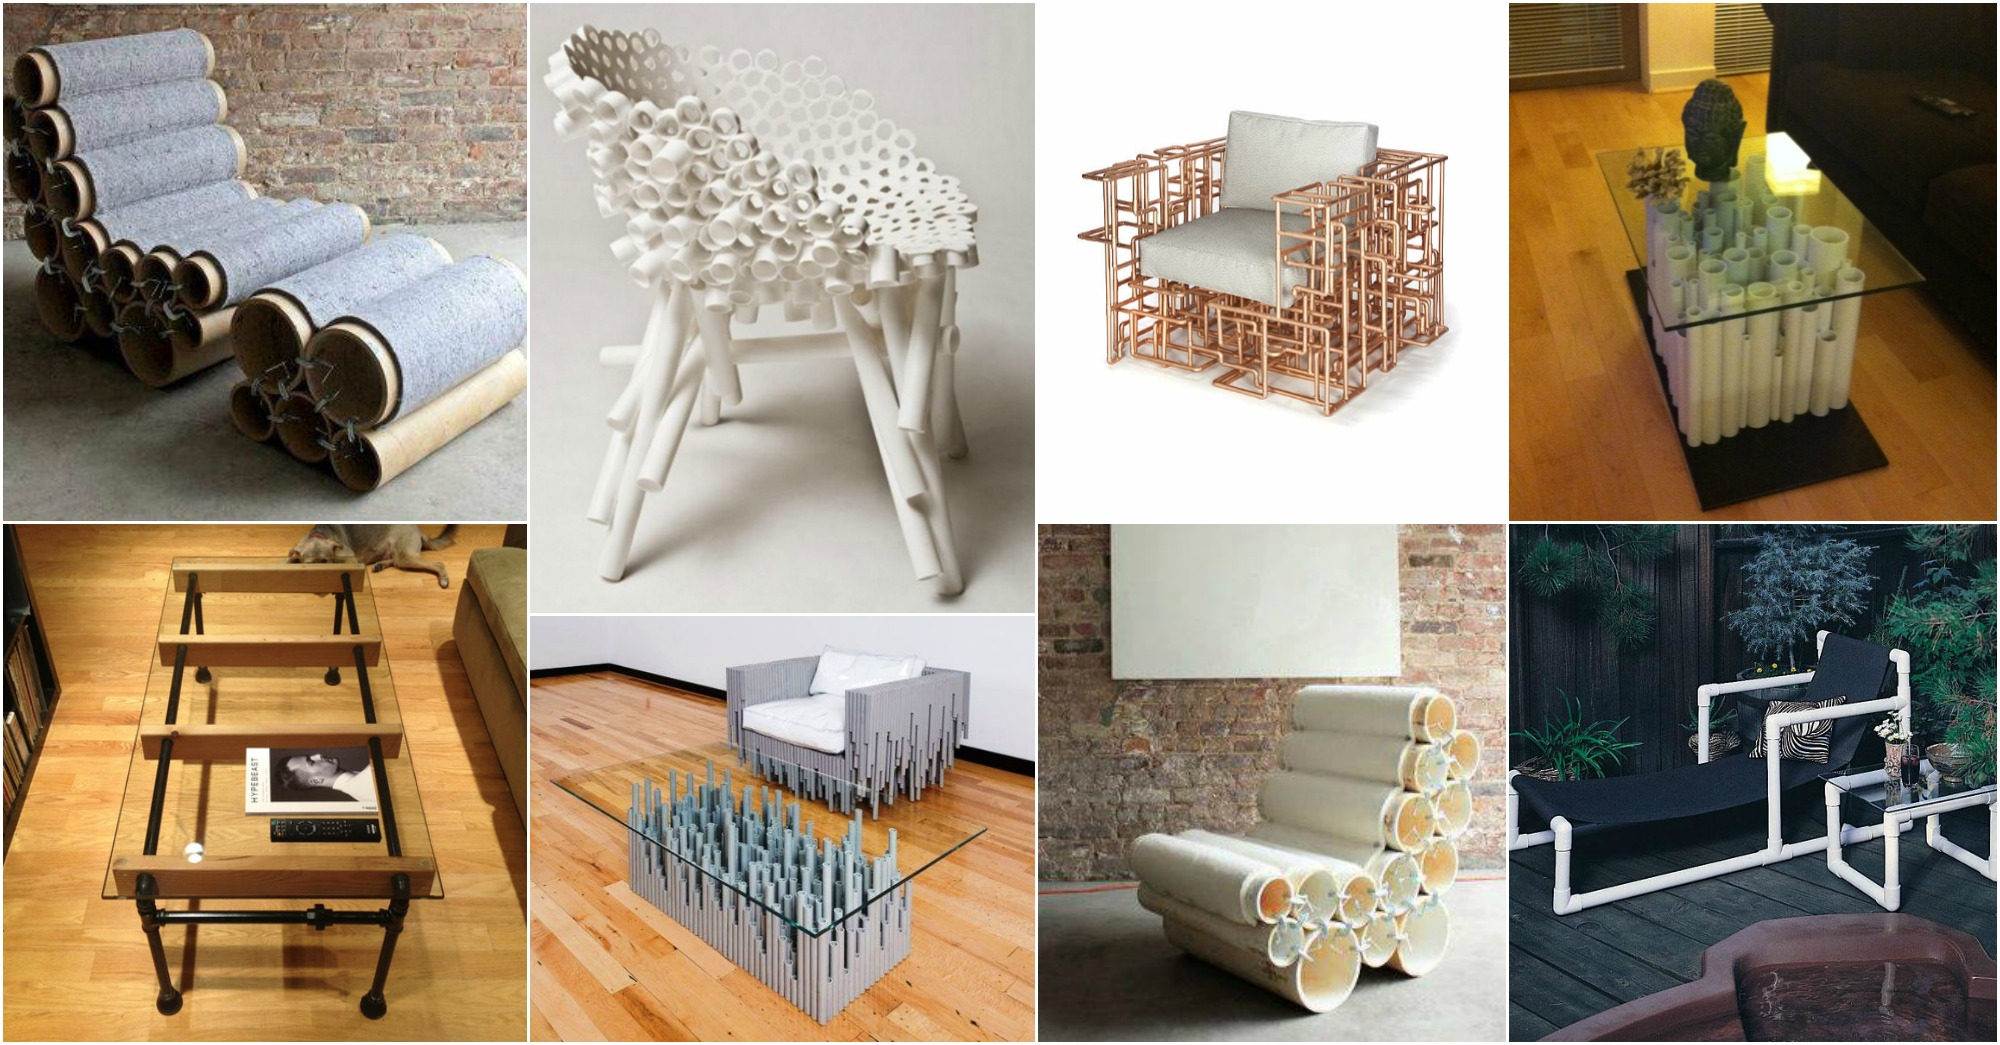 15 ideas de muebles con tuberia pvc que te fascinan for Ideas muebles